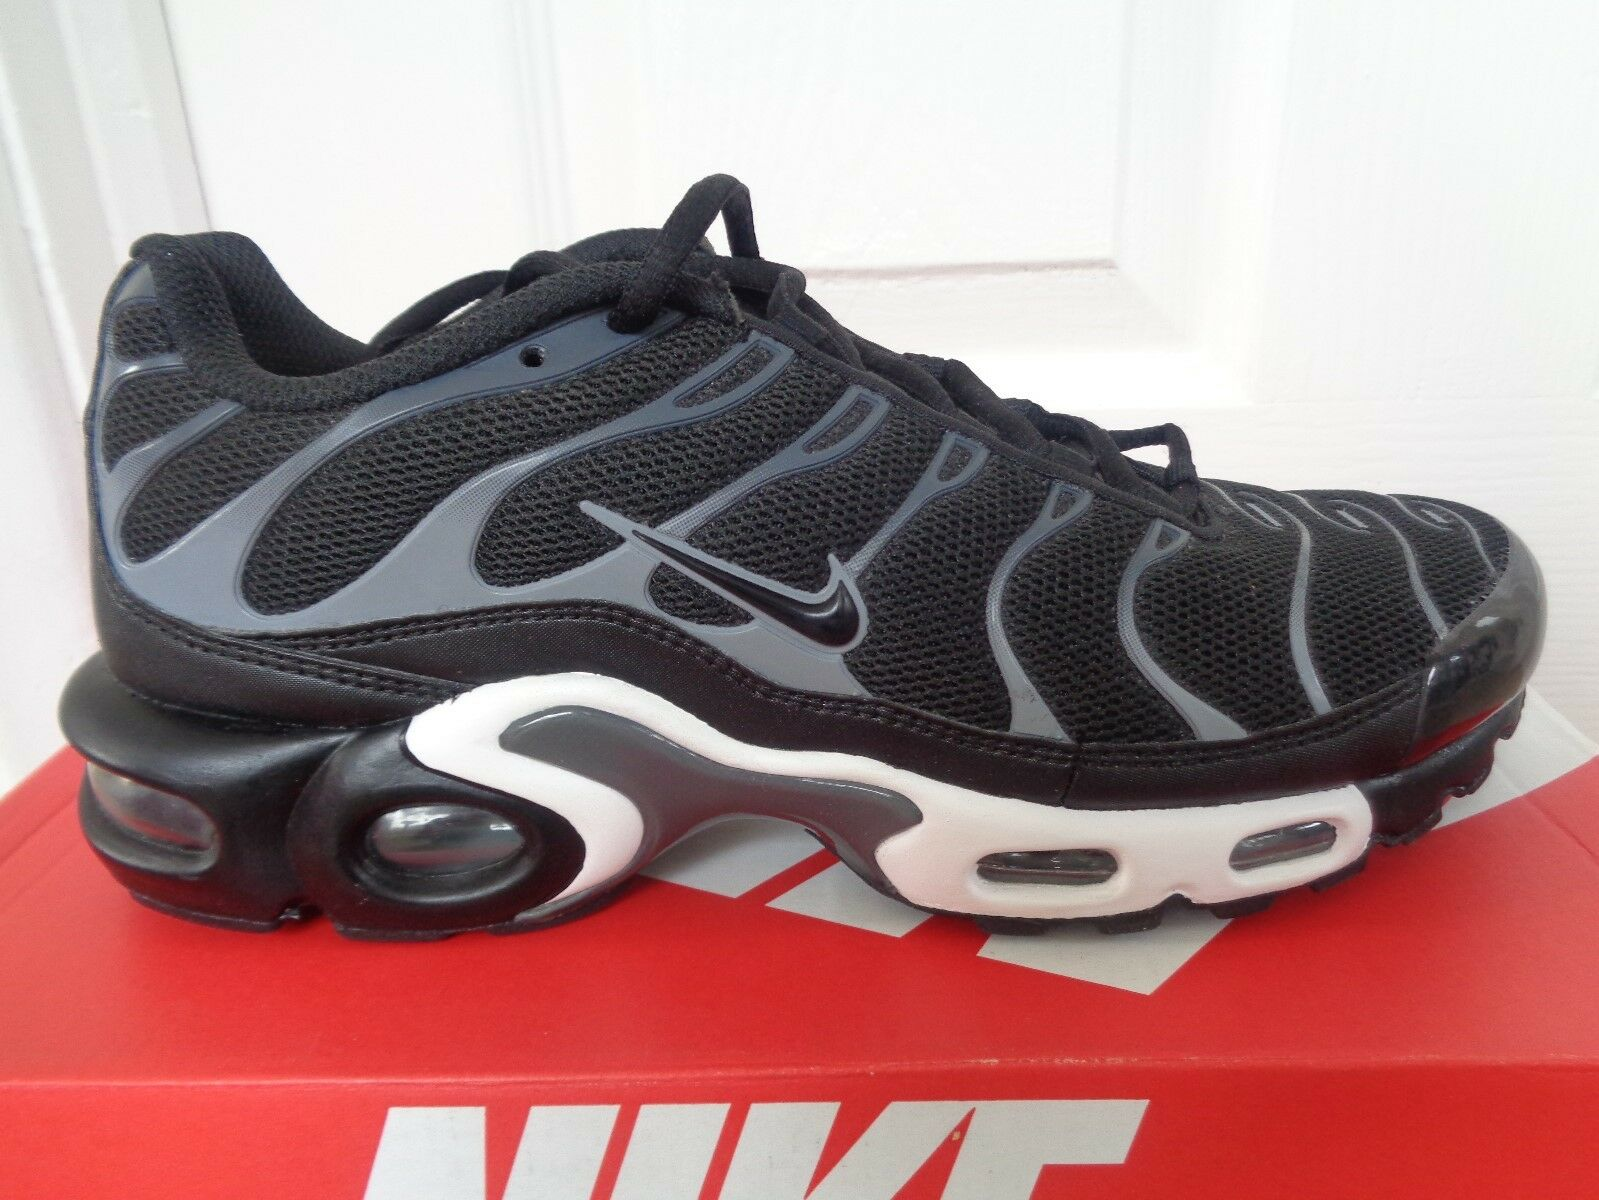 Nike Air max plus TXT trainers sneakers shoes 647315 002 uk 6 eu 40 us 7 NEW+BOX